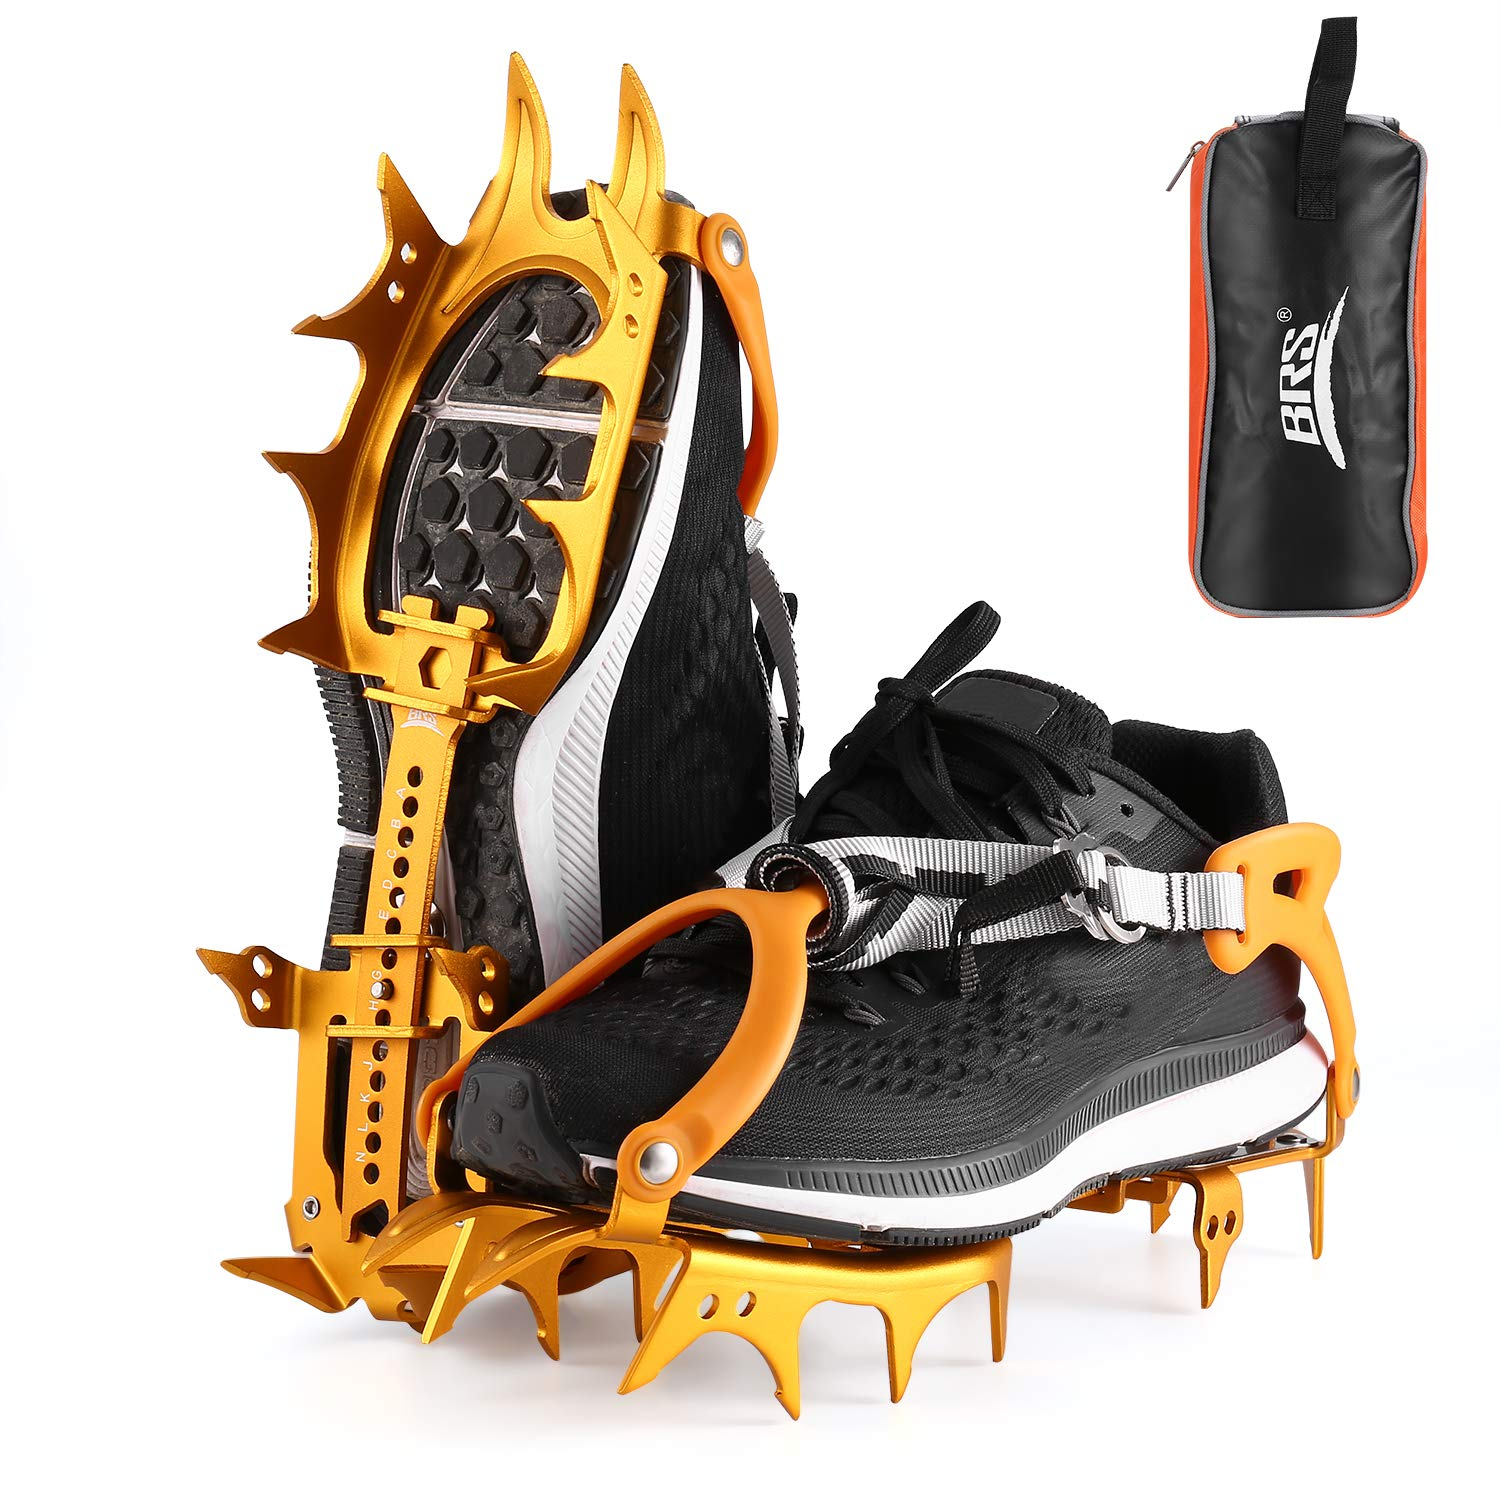 OUTAD Traction Cleats/Crampon for Snow and Ice